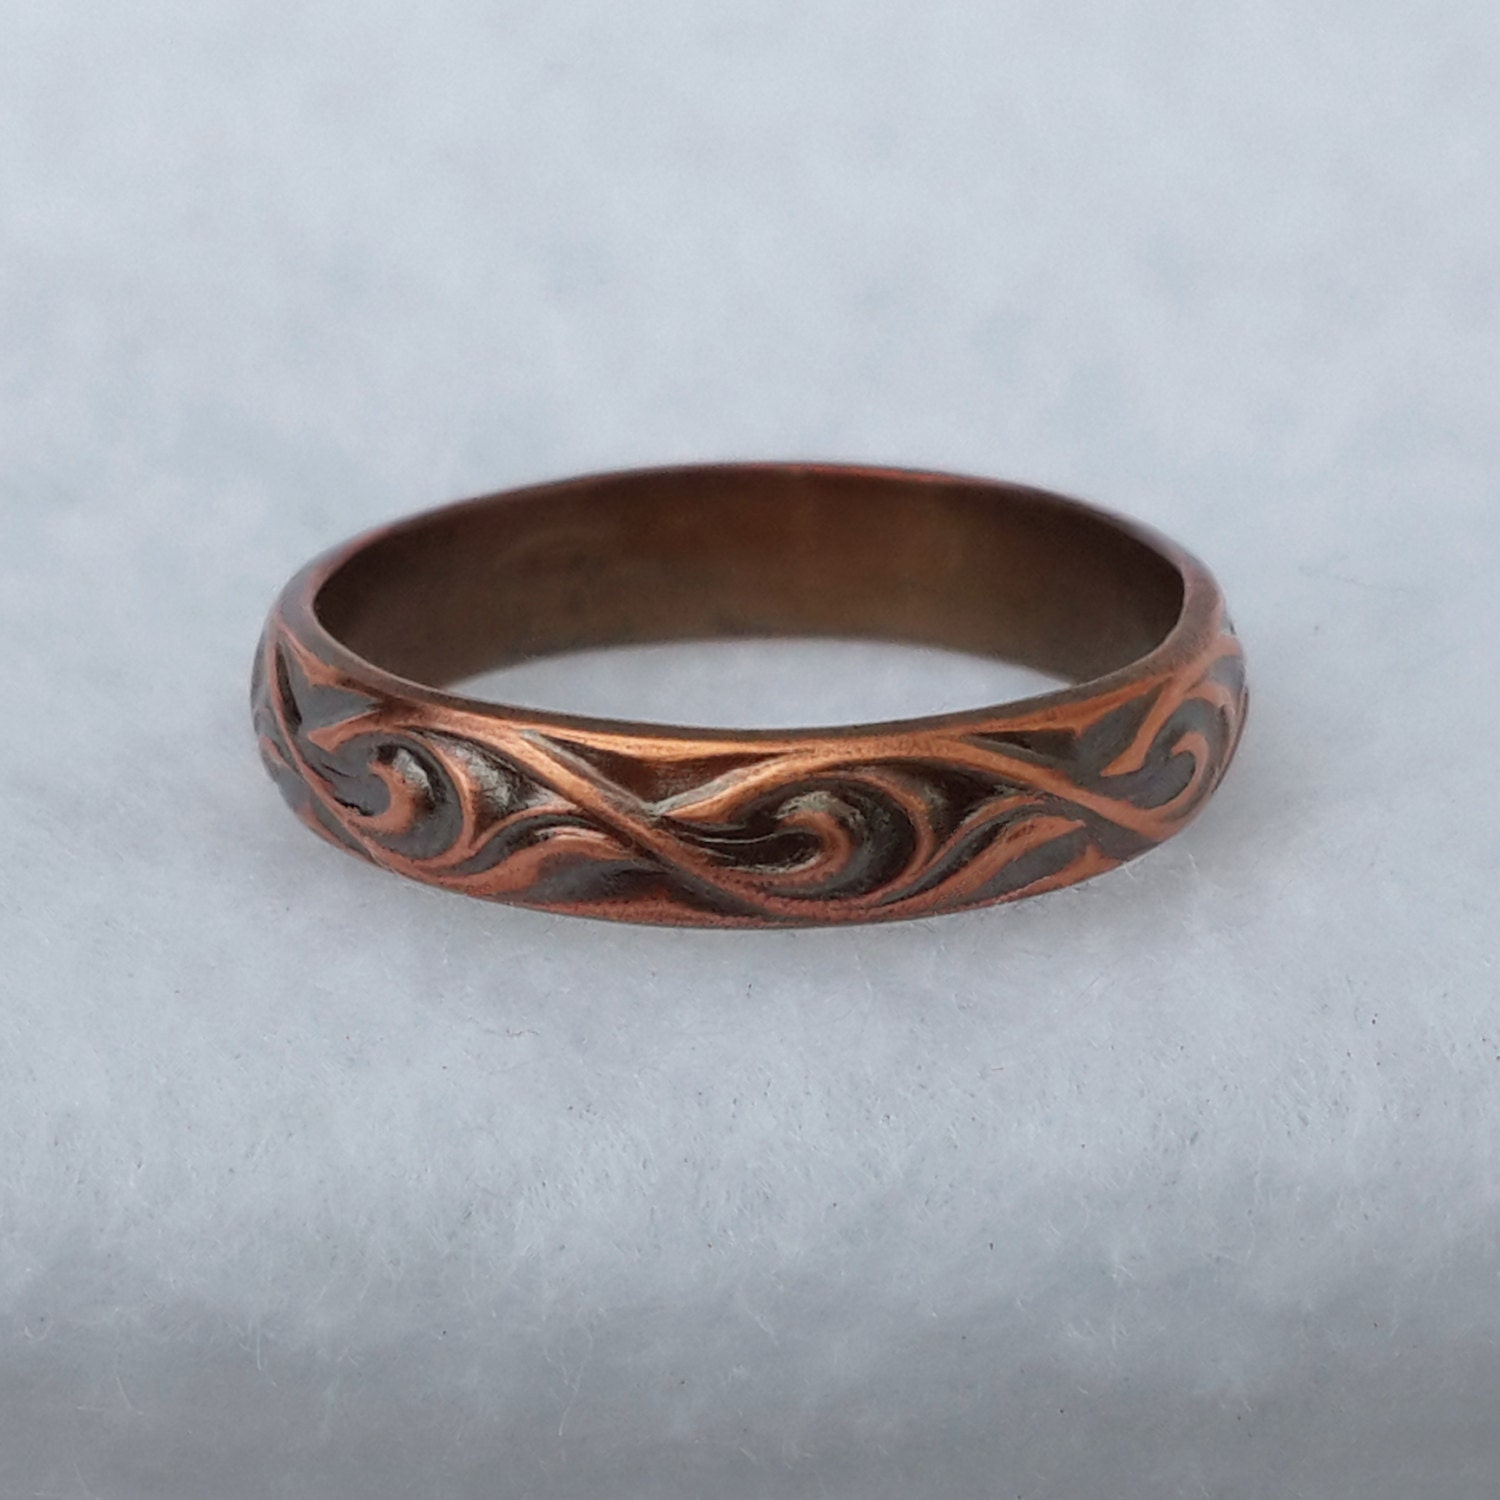 Simplistic Bands: Copper Wedding Ring Simple Paisley Band His And Her Bands